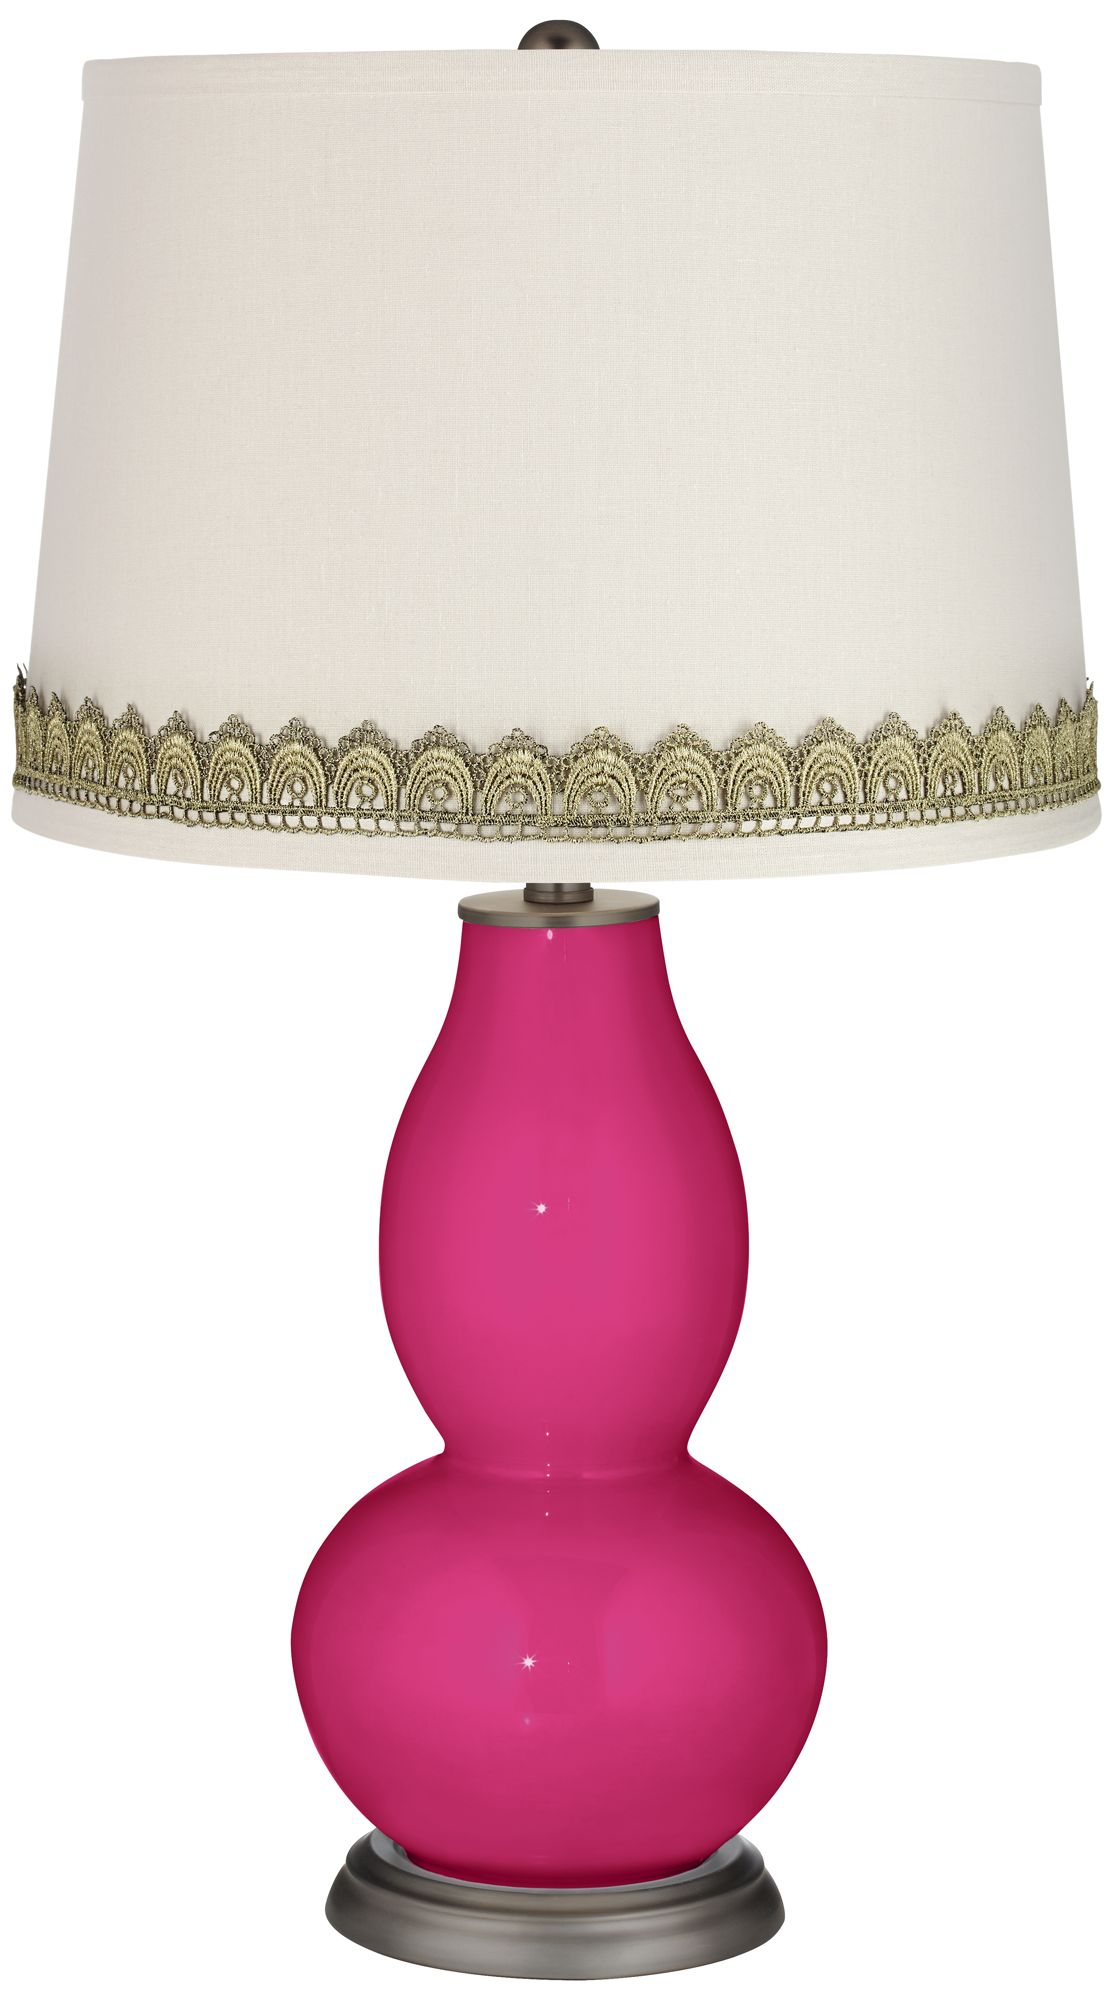 Replica Slim Lamp Cheap Beetroot Purple Double Gourd Table Lamp with Scallop Lace Trim